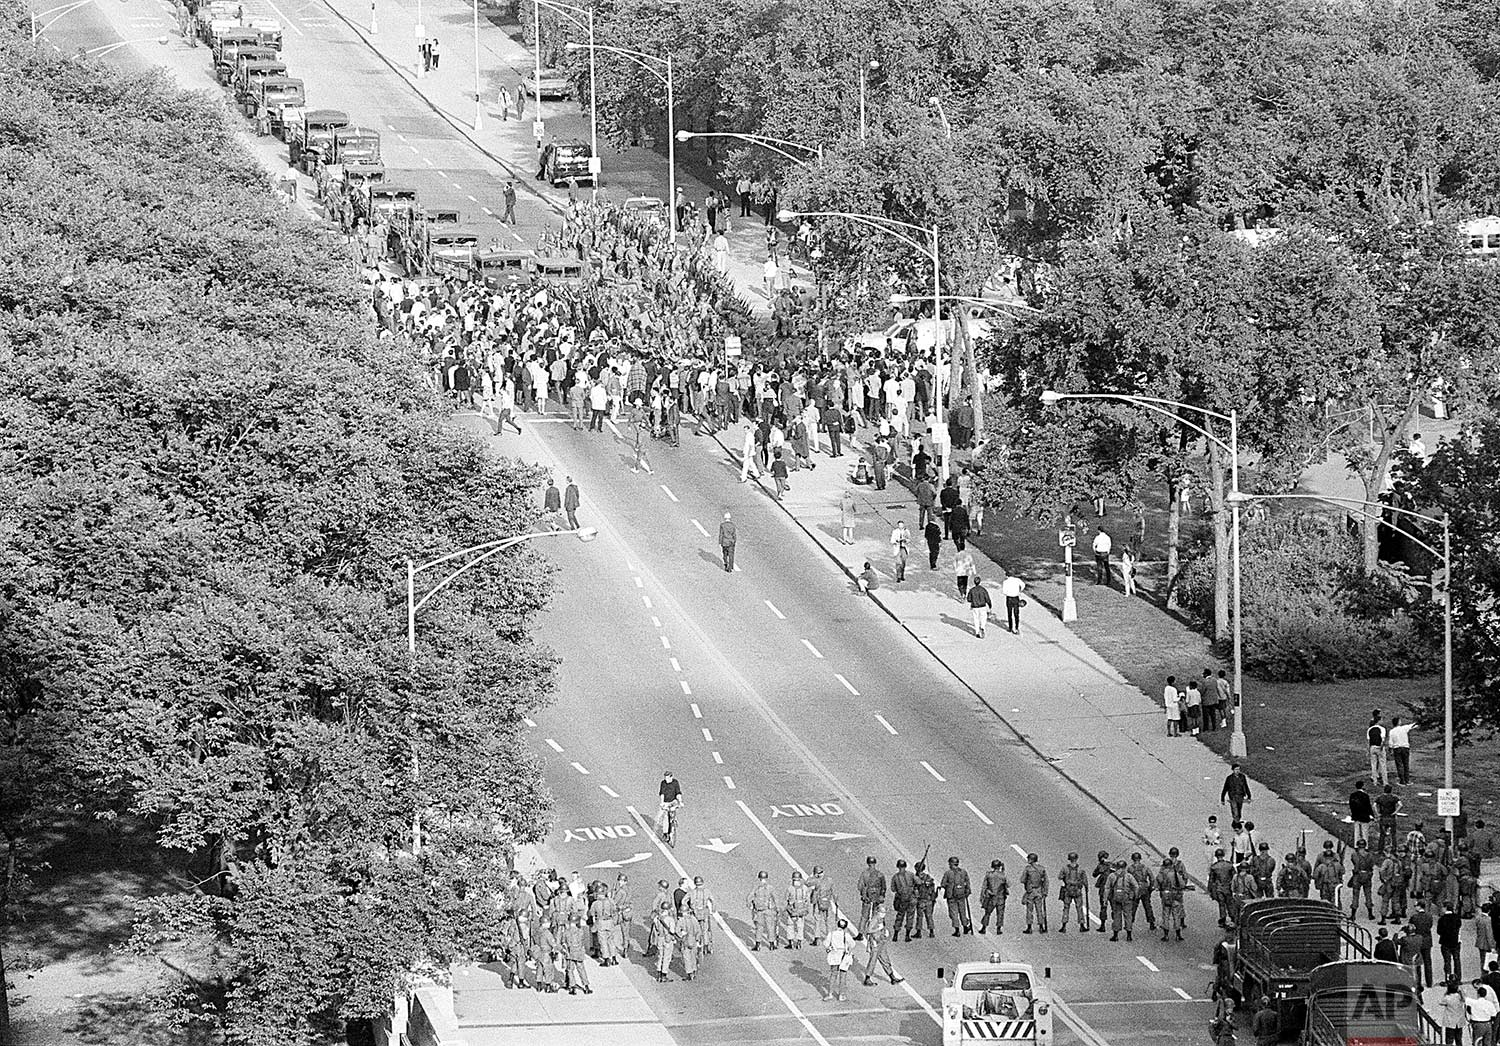 Illinois National Guardsmen are stationed at the end of a bridge in Chicago's Grant Park on August 28, 1968, as police try to cope with an estimated 9,000 anti-war demonstrators. They were under orders to help police prevent the demonstrators from marching on the International Amphitheater where Democrats were holding their presidential nominating session tonight. (AP Photo)